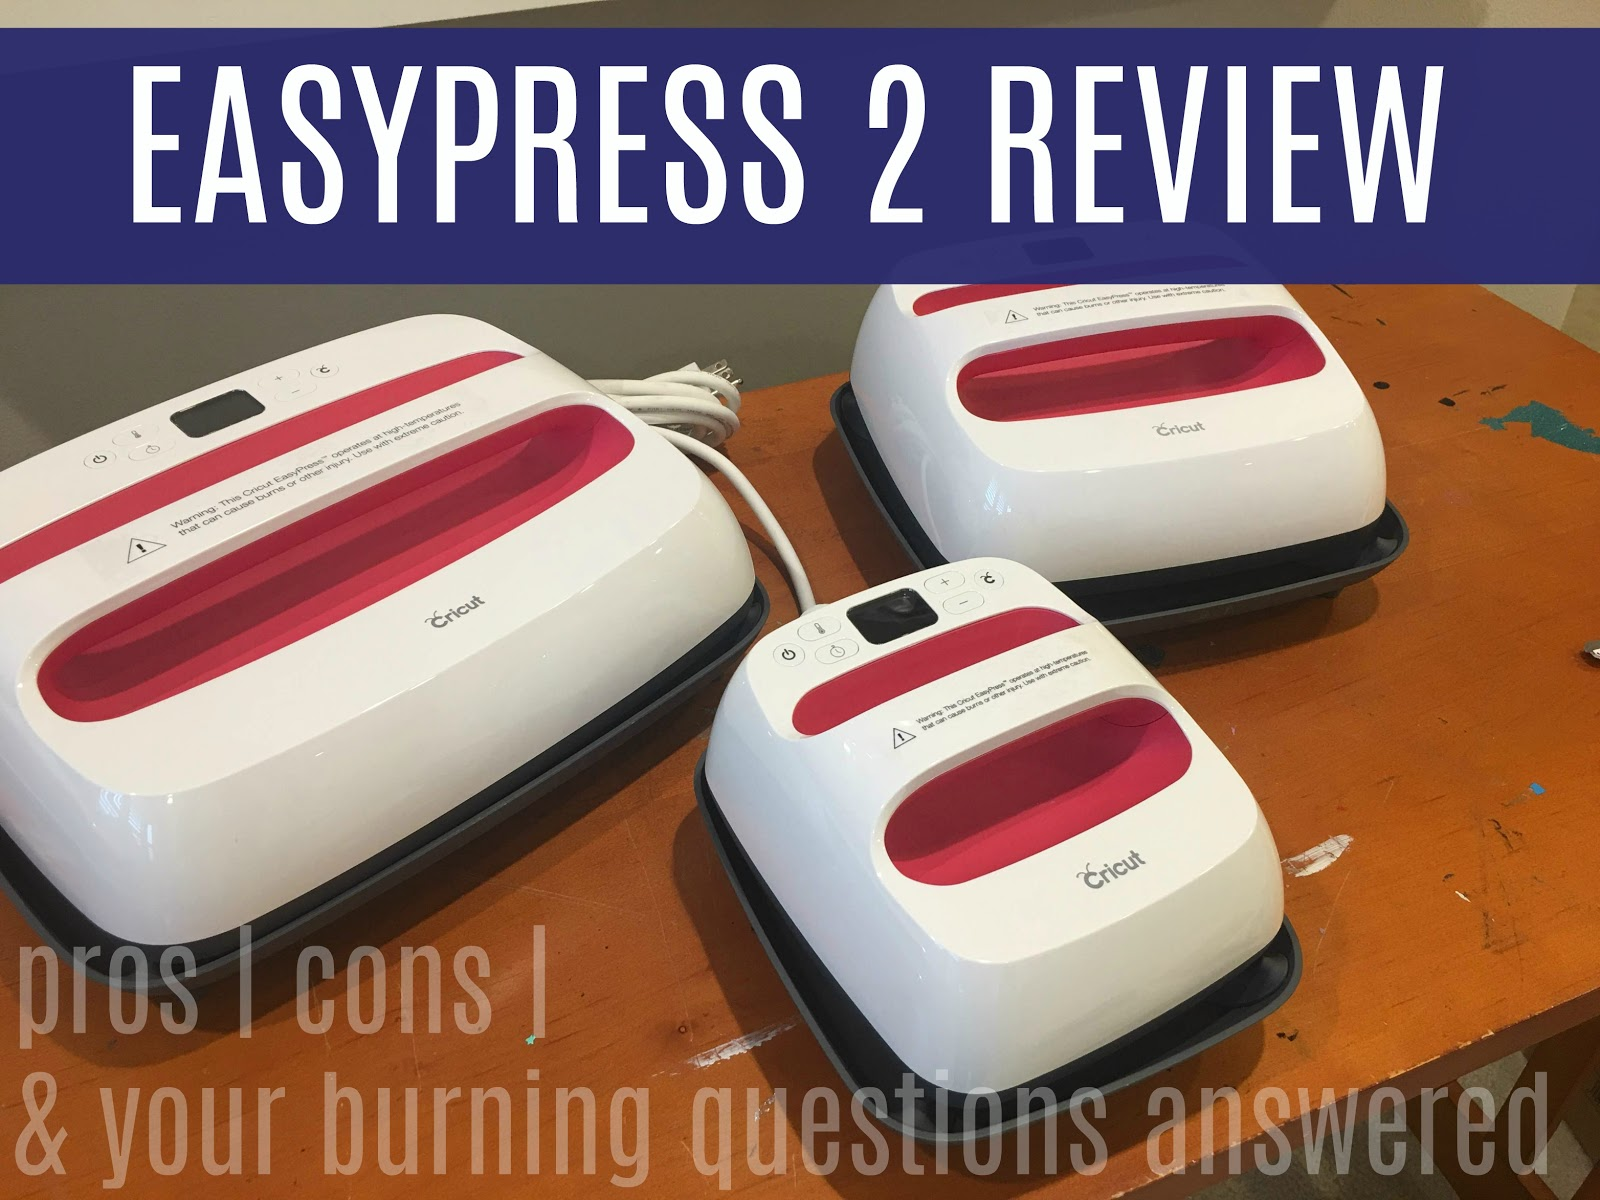 Cricut EasyPress 2 Review: All Your Burning Questions Answered